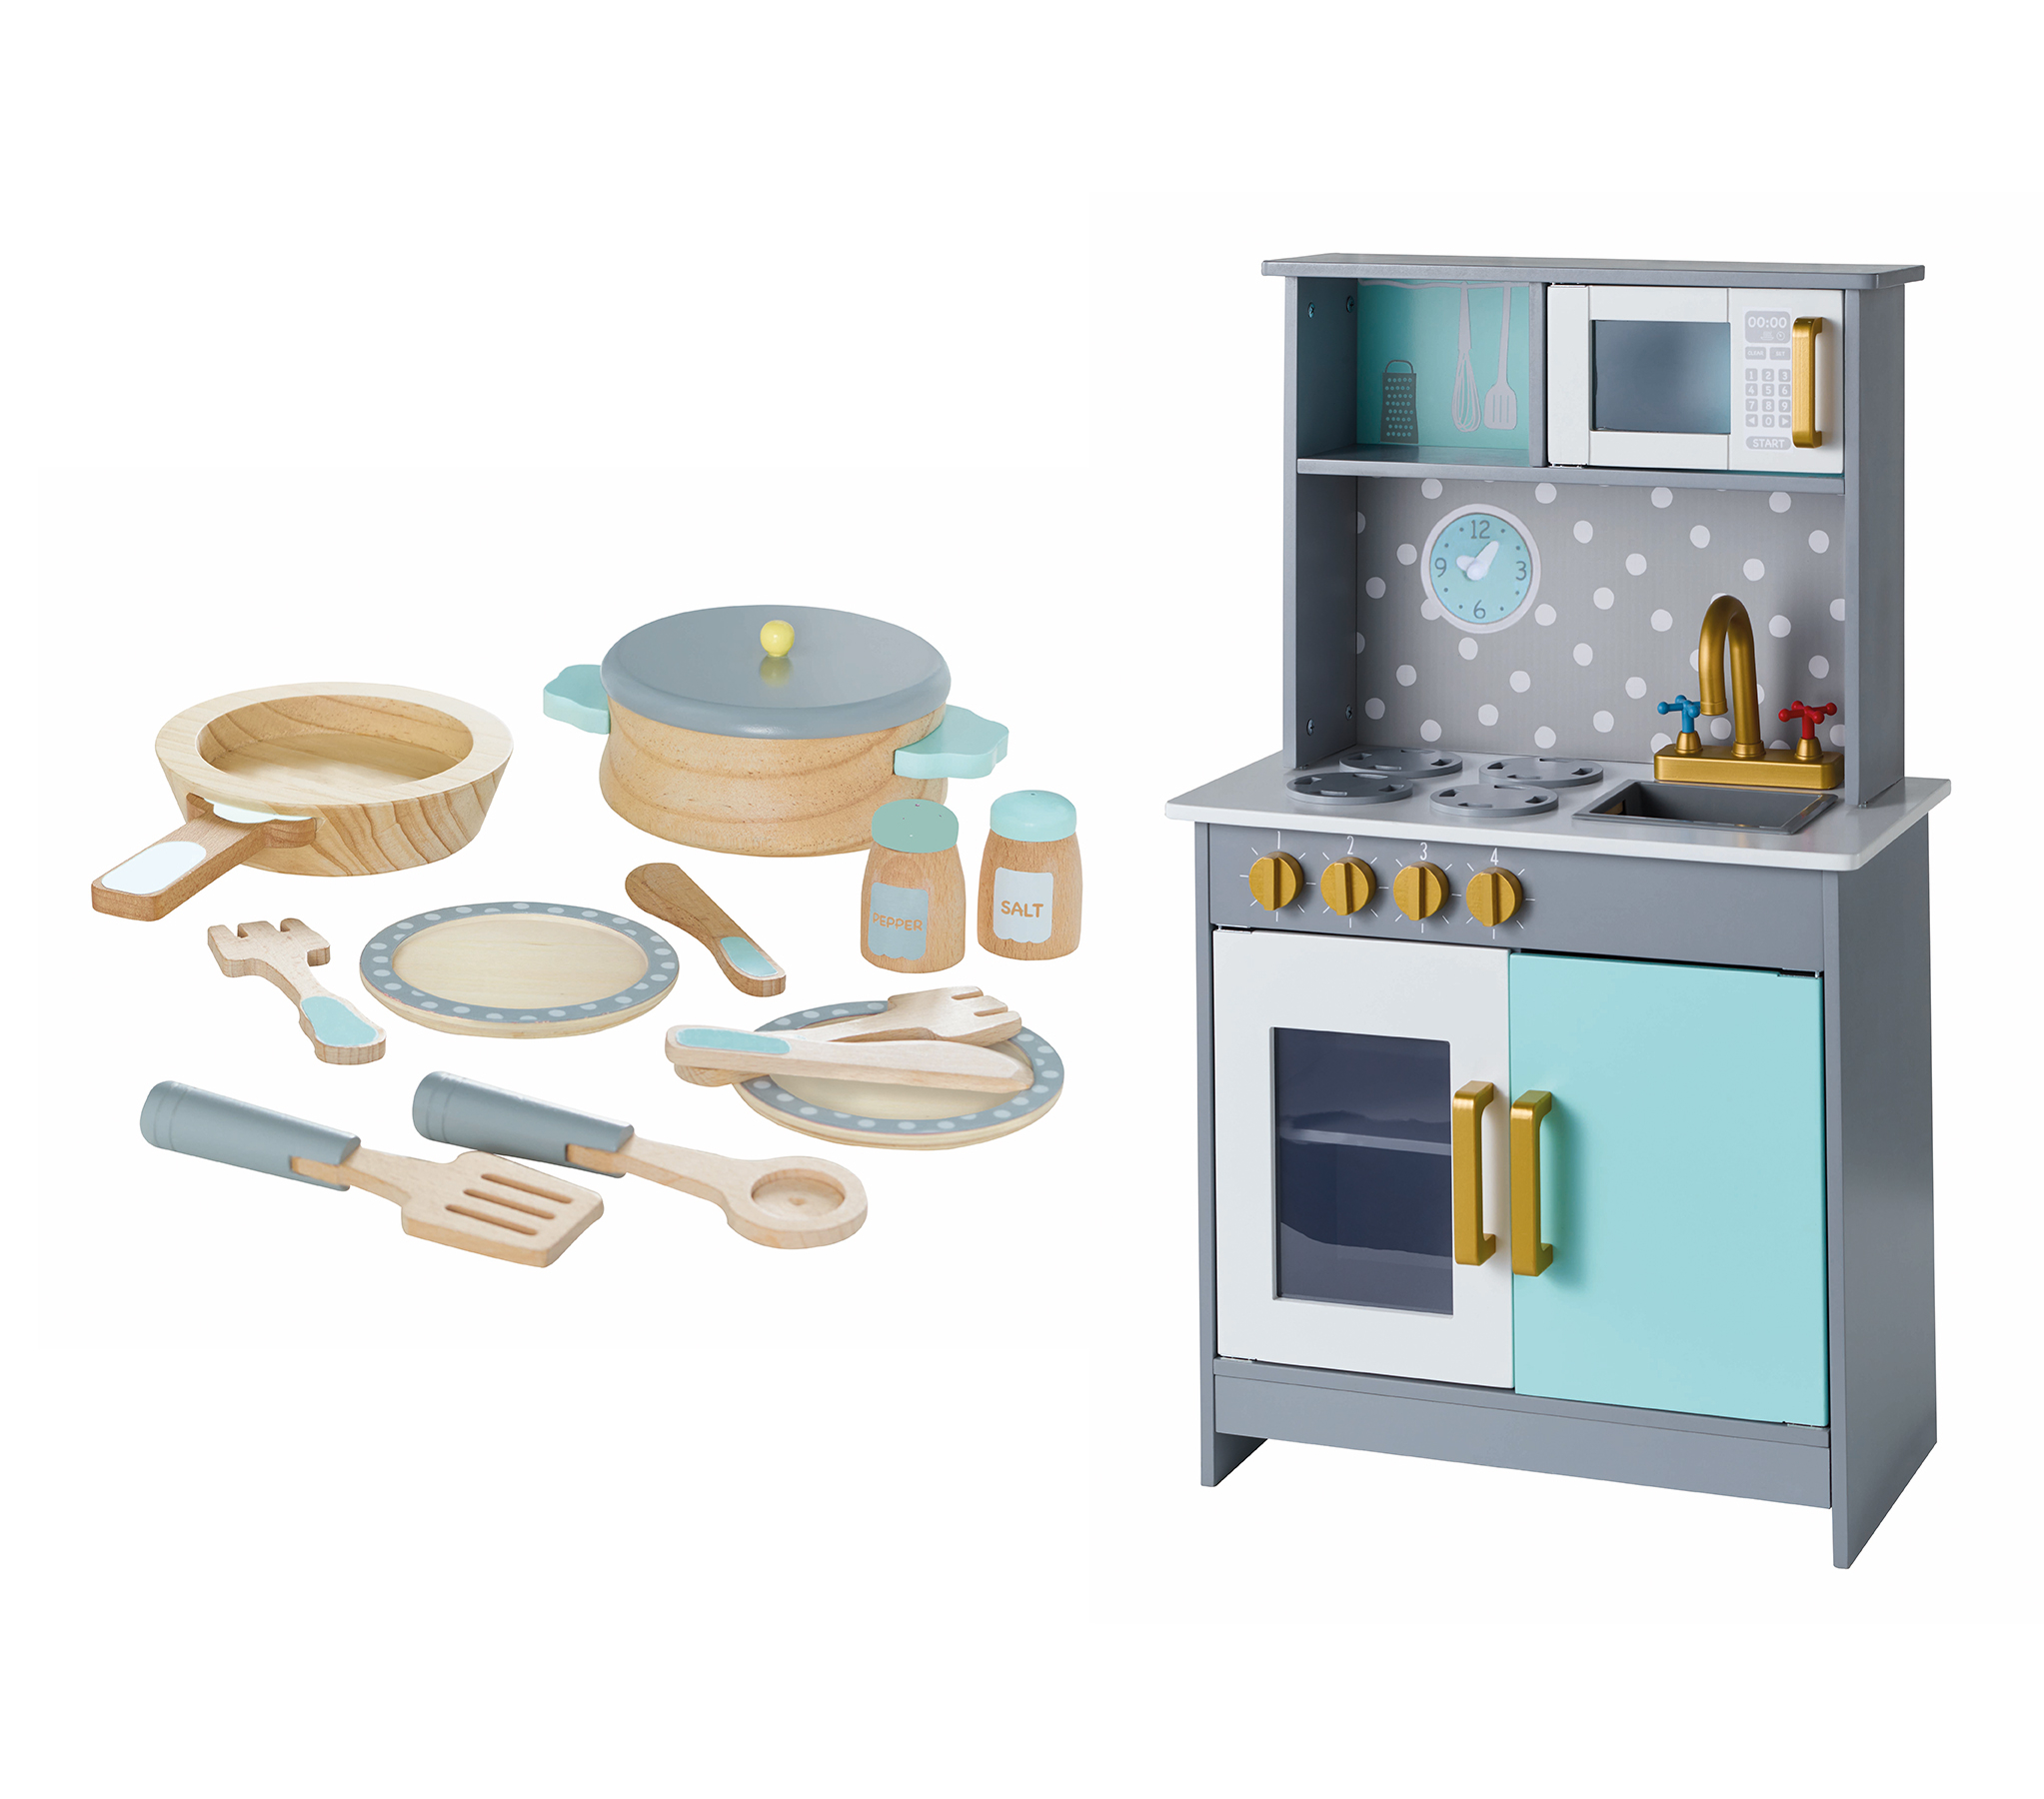 Wooden Deluxe Kitchen And Cooking Set Toys Character George